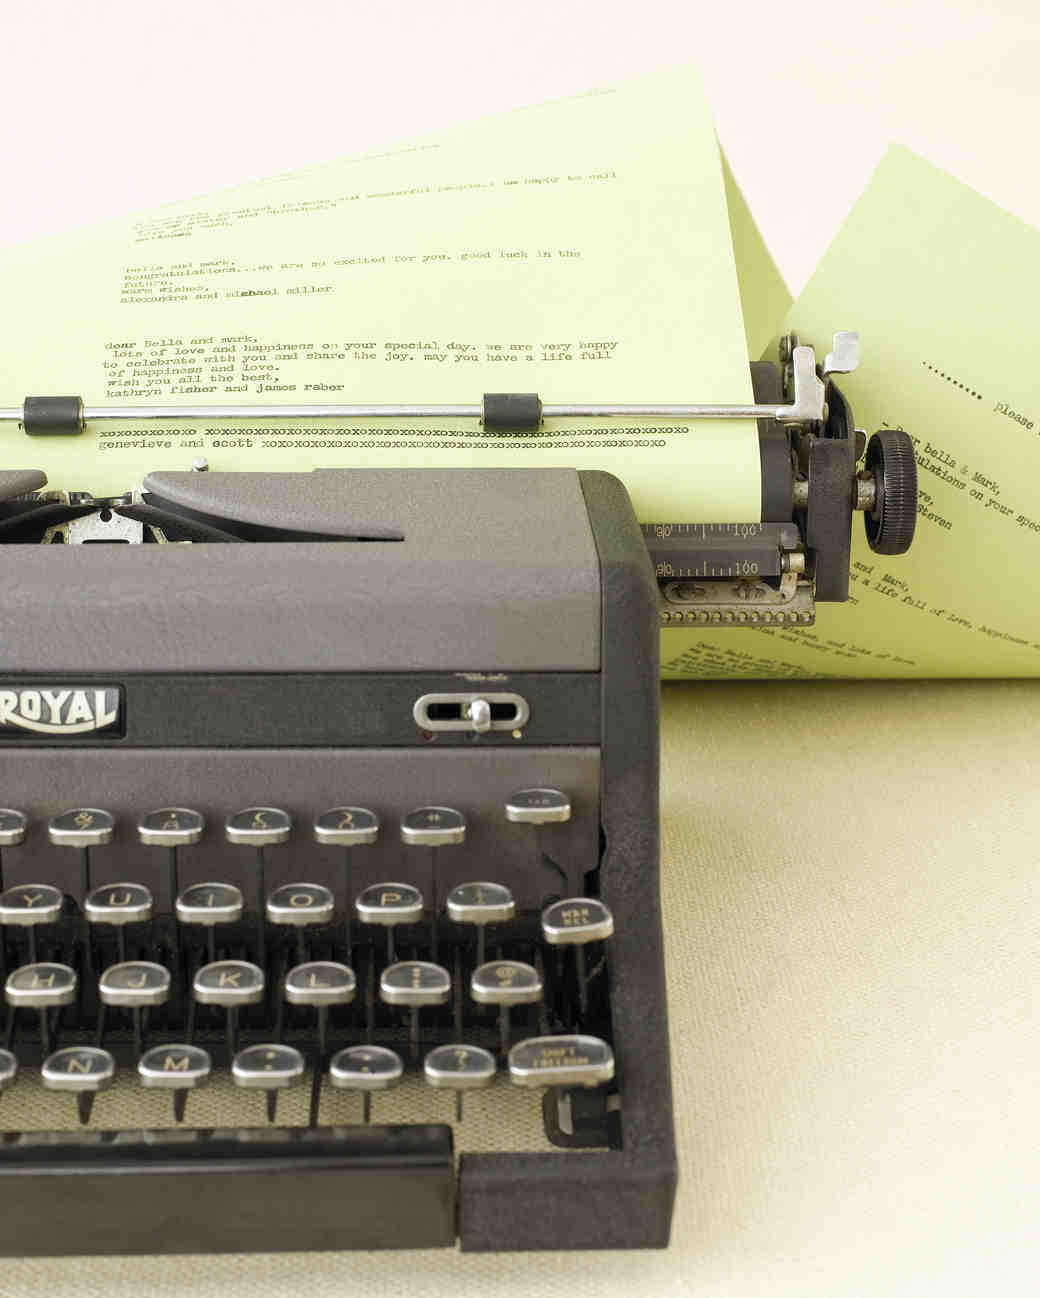 diyguest-typewriter-0715.jpg